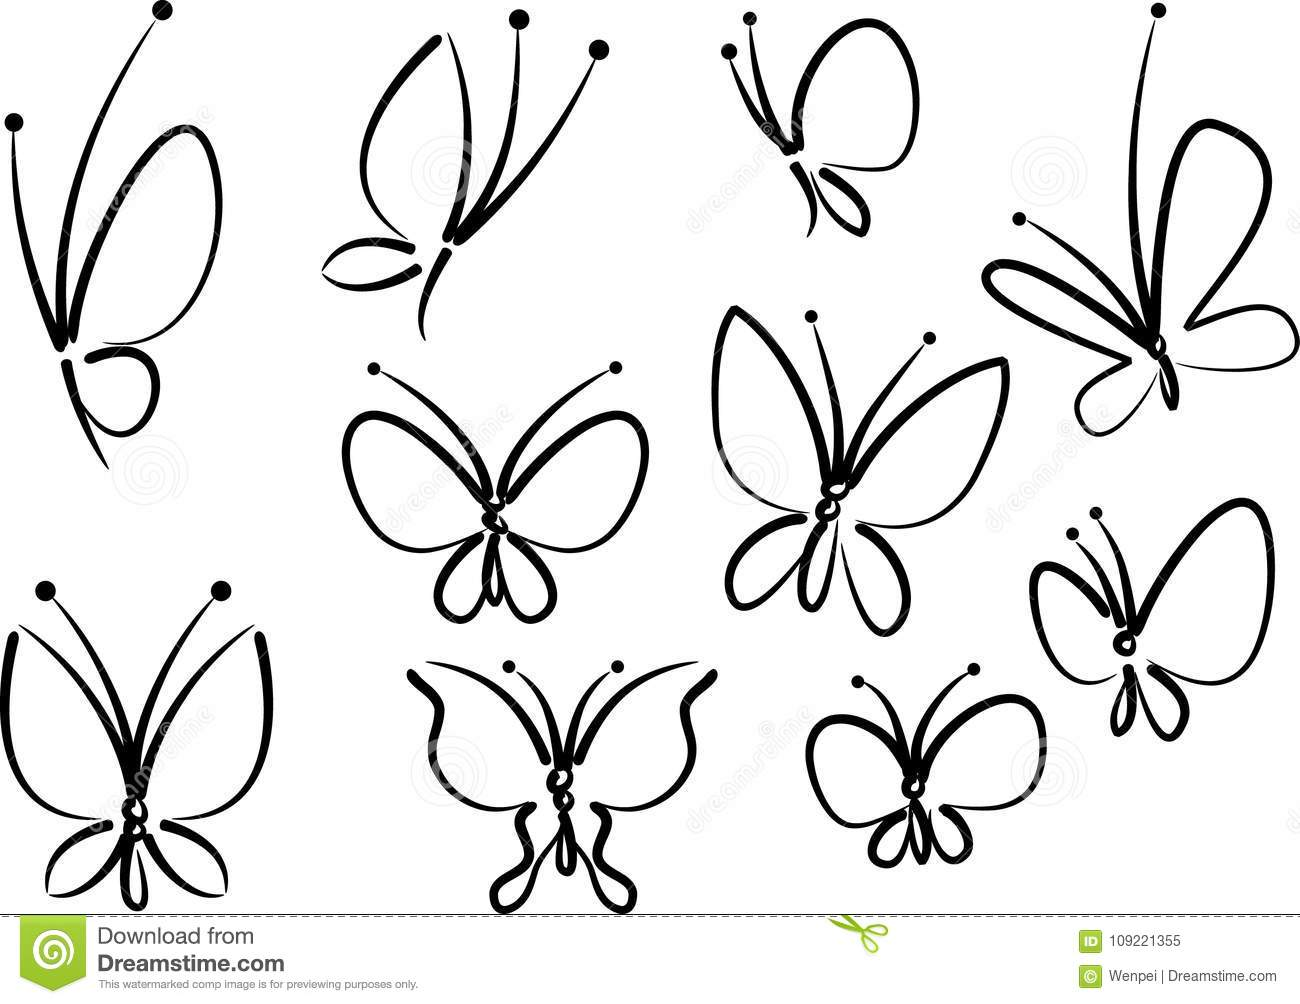 Butterfly with flower design vector drawing icon